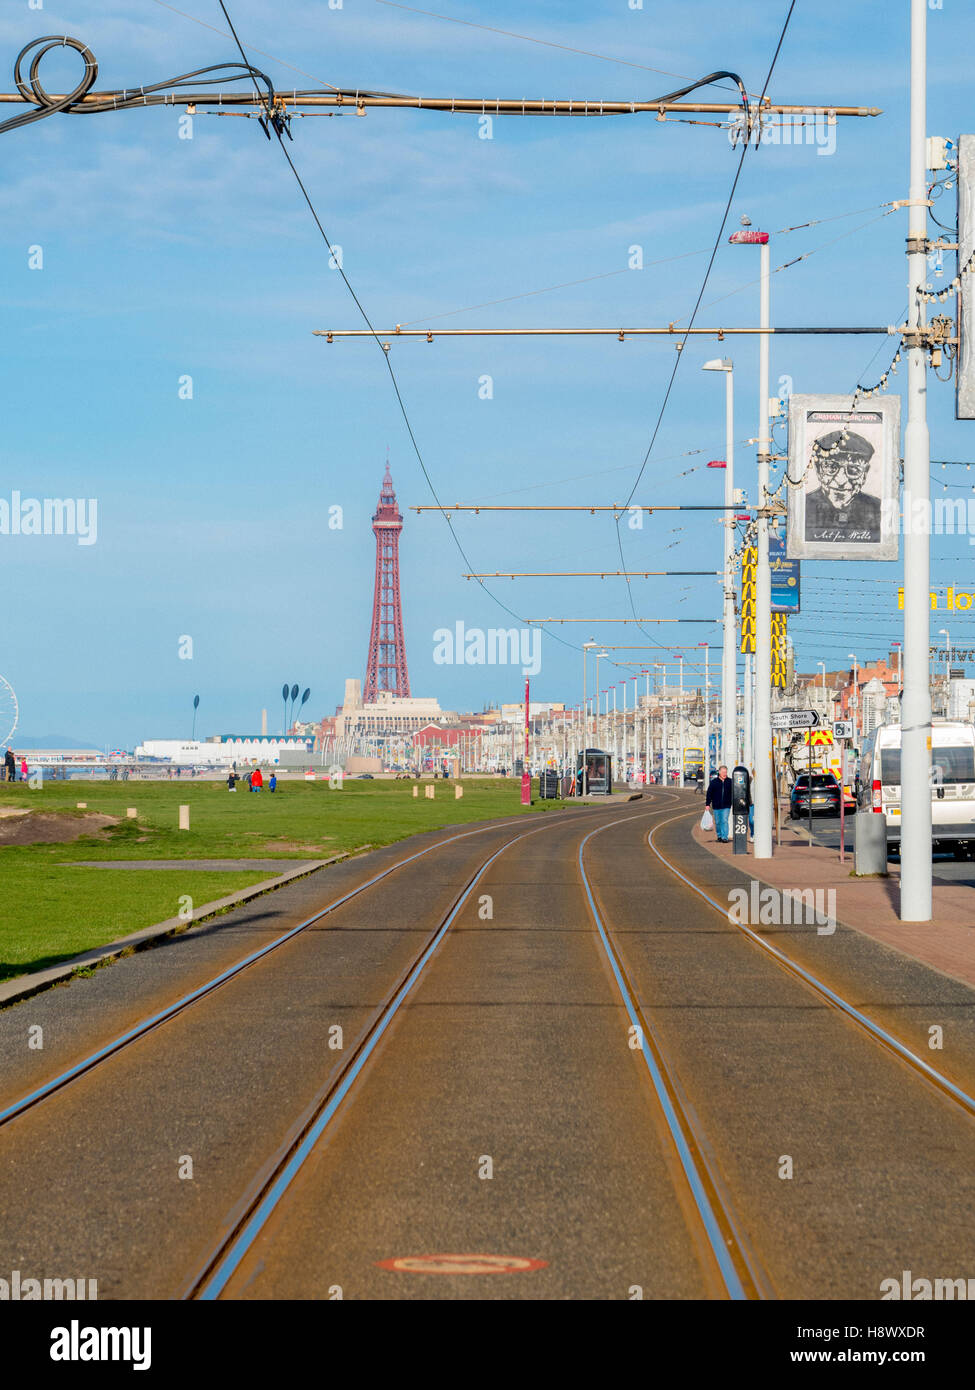 Tram tracks along seafront promenade with Tower in distance, Blackpool, Lancashire, UK. - Stock Image